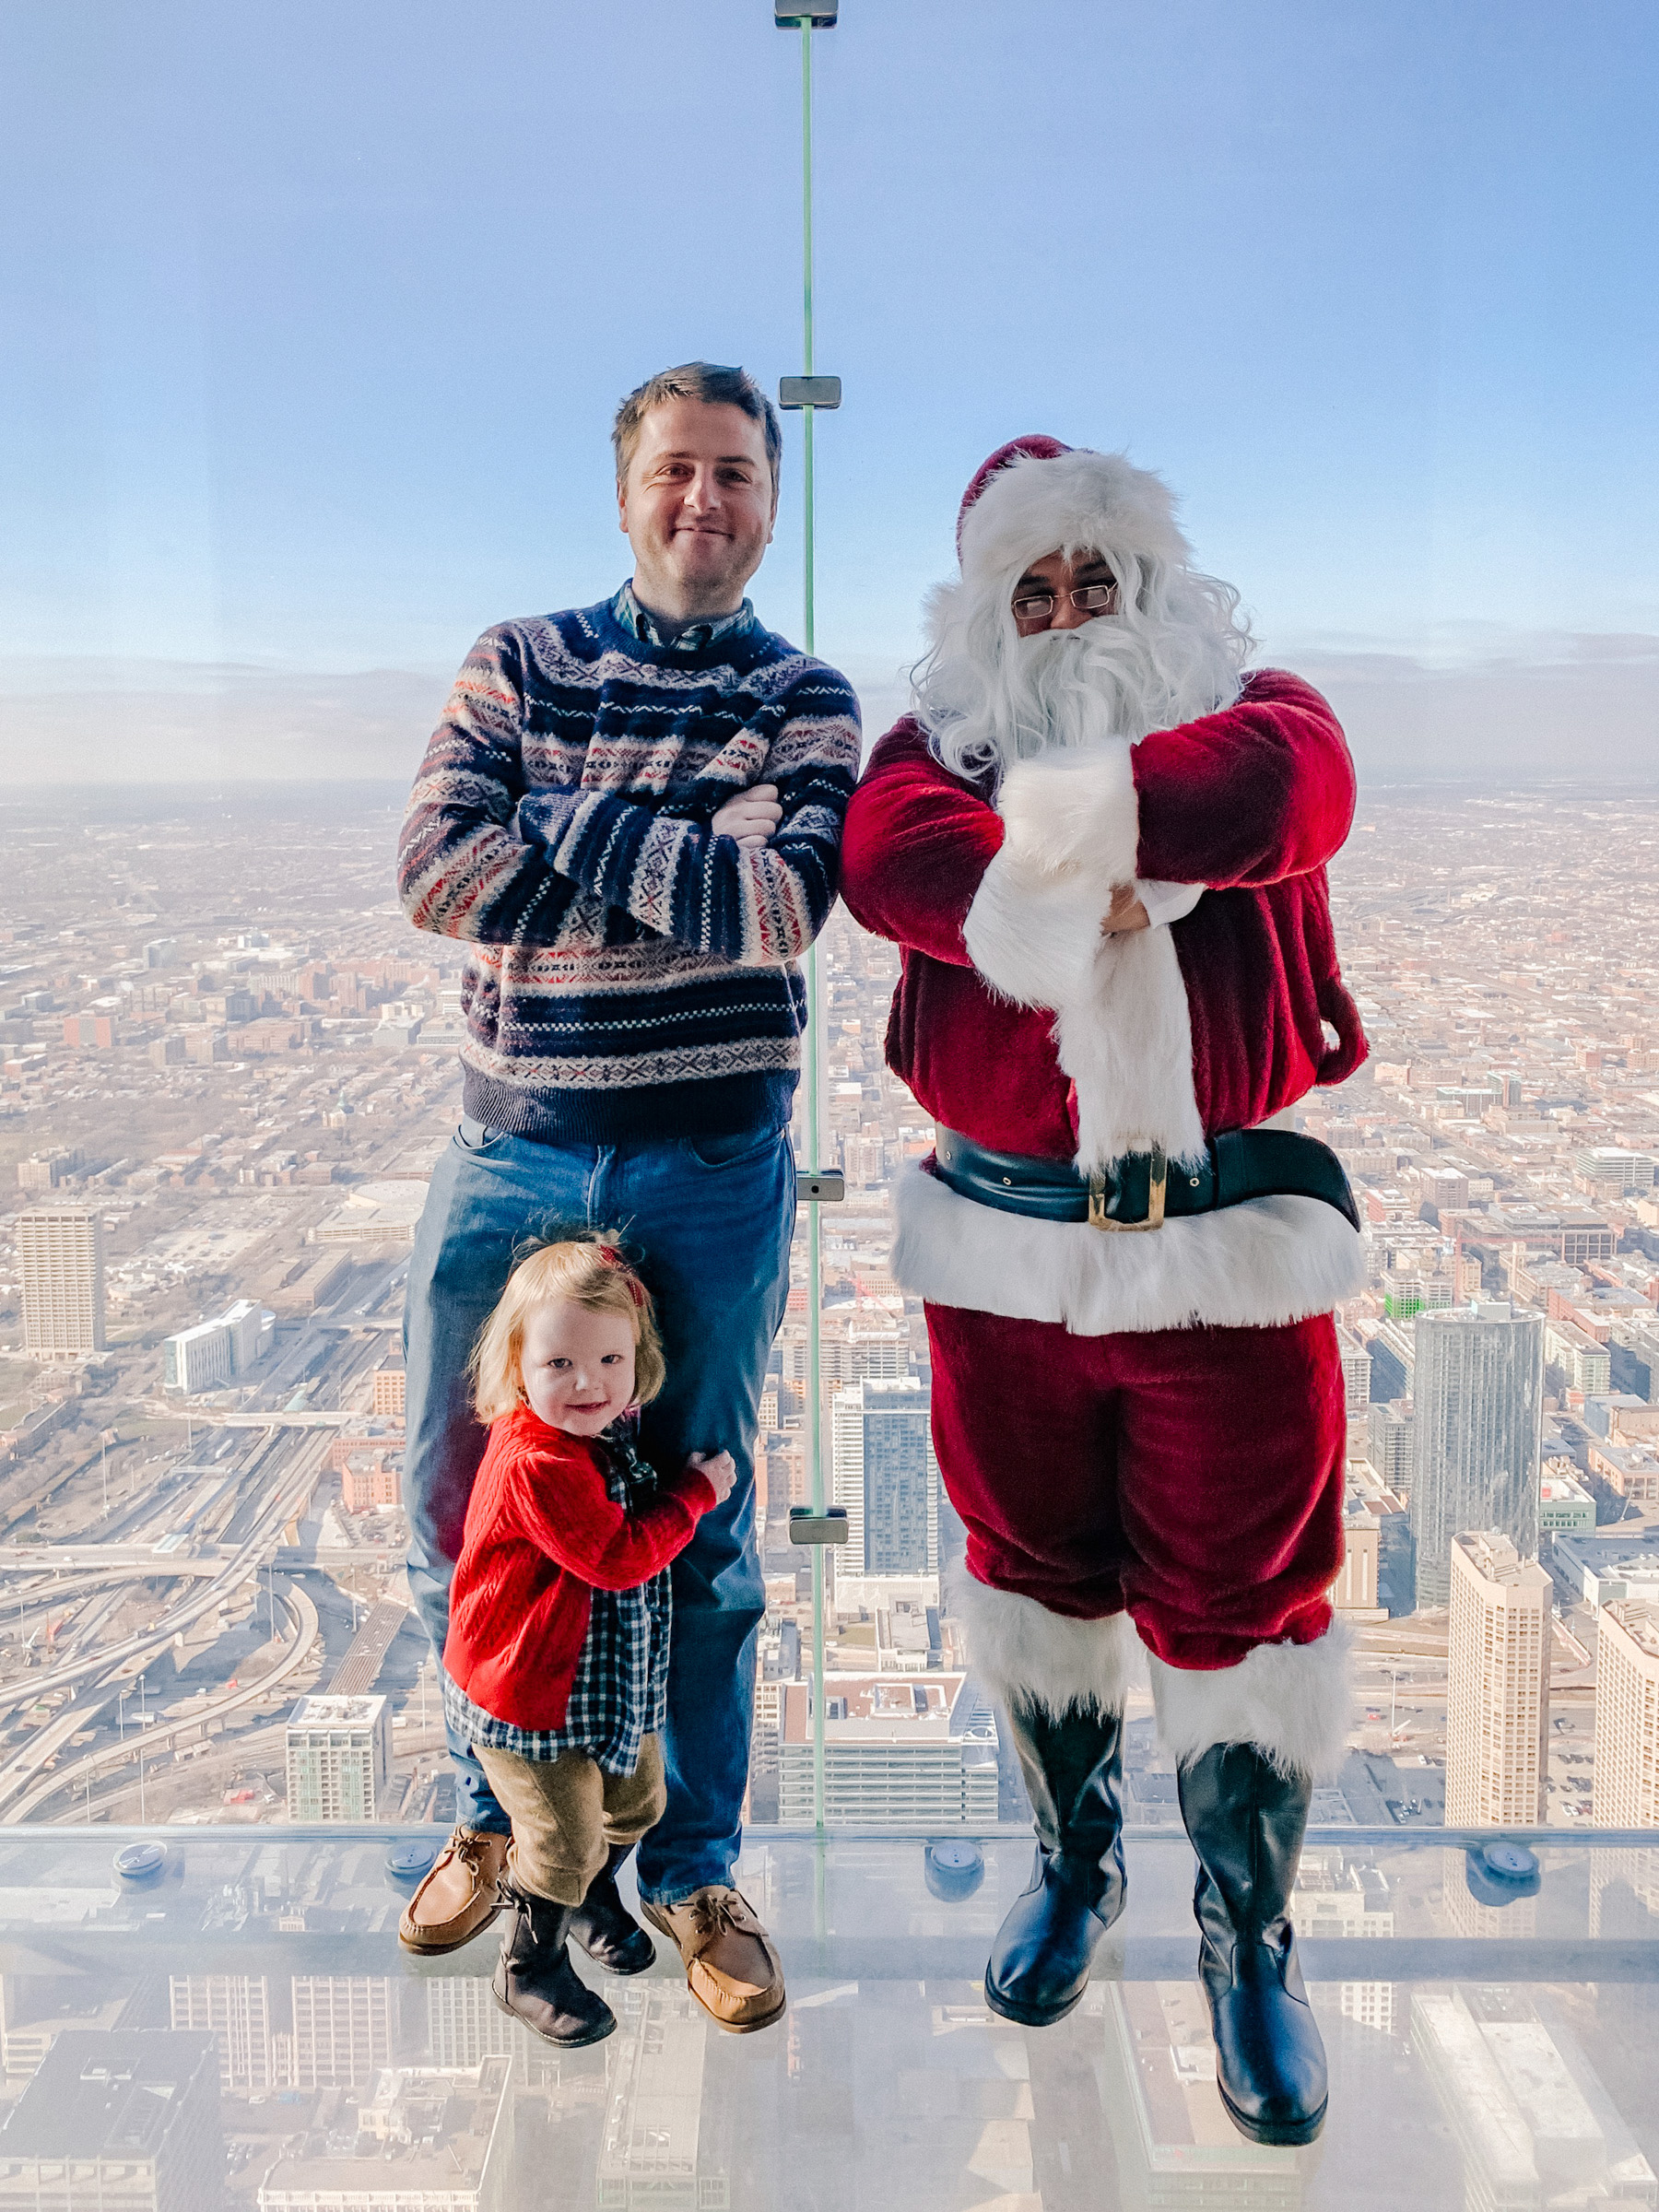 Kelly in the City - Meeting Santa on the Willis Tower Skydeck